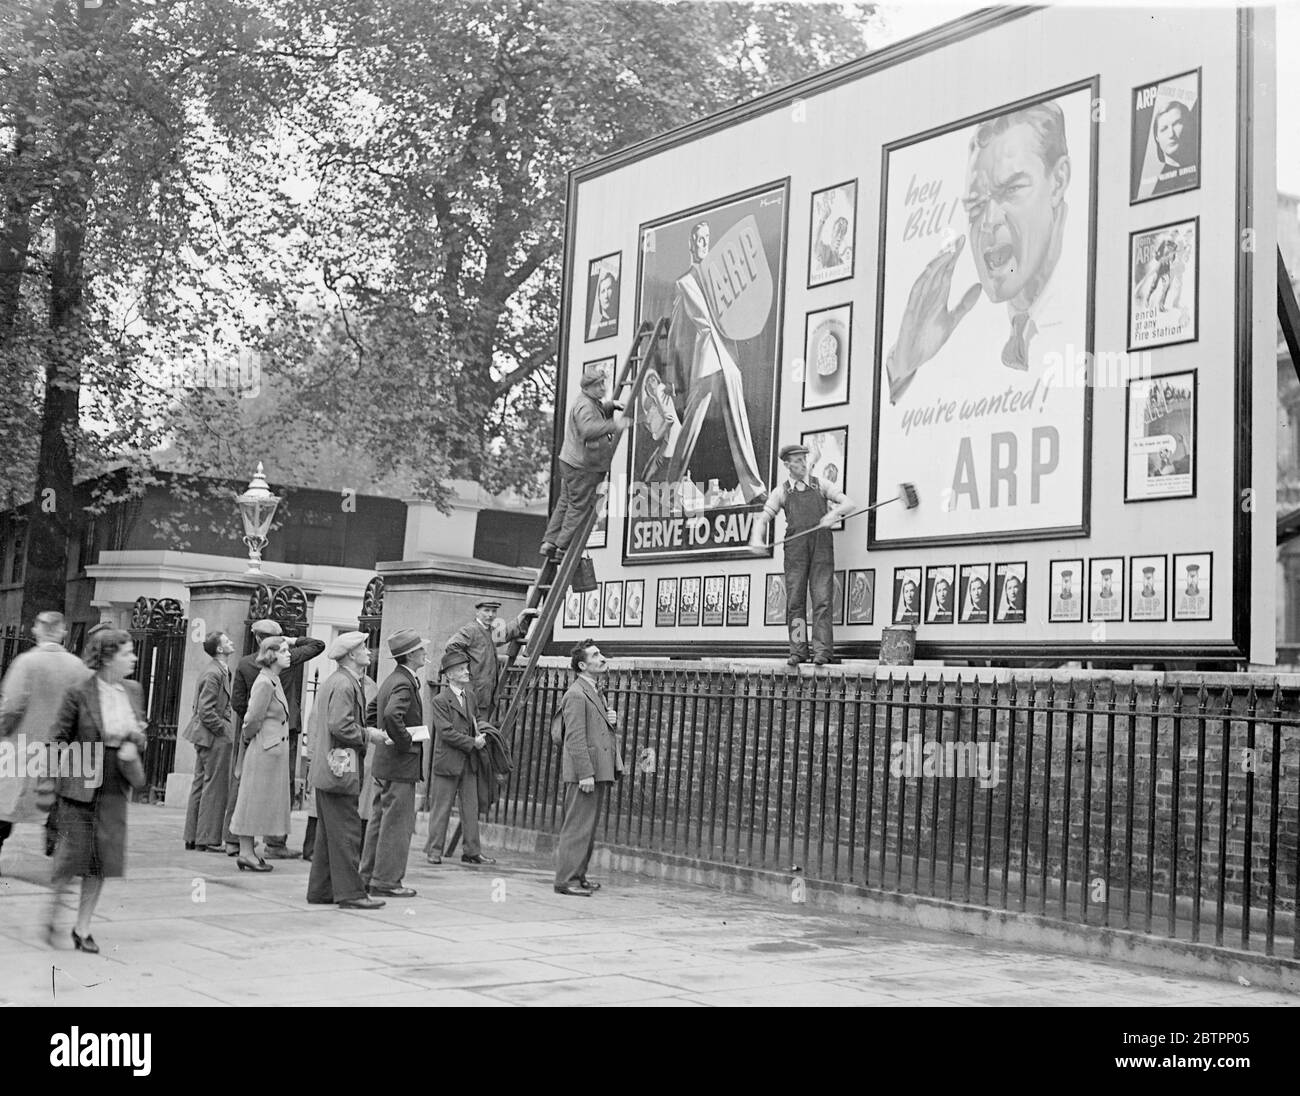 ARP volunteers still wanted. Although the prospects of settling the Sudetenland dispute are now brighter, air raid precautions work is still going on at full pressure in London as a safety measure. Photo shows, workers on their way to business paused to watch the new ARP posters being plastered up in Whitehall. 29 September 1938 Stock Photo